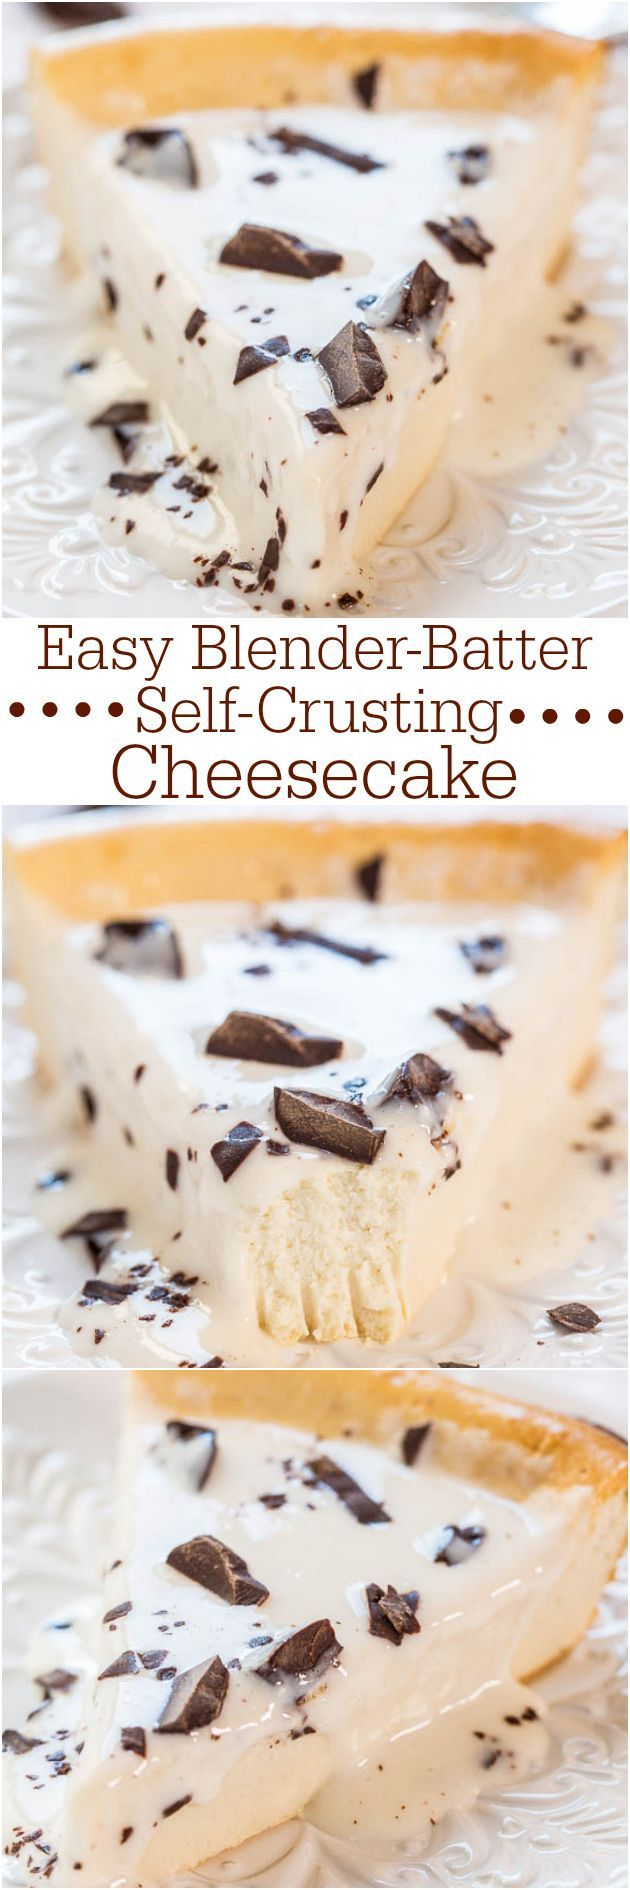 Easy Blender-Batter Self-Crusting Cheesecake - No crust to make and whiz the batter together in the blender!! Easy, foolproof, and so good!!